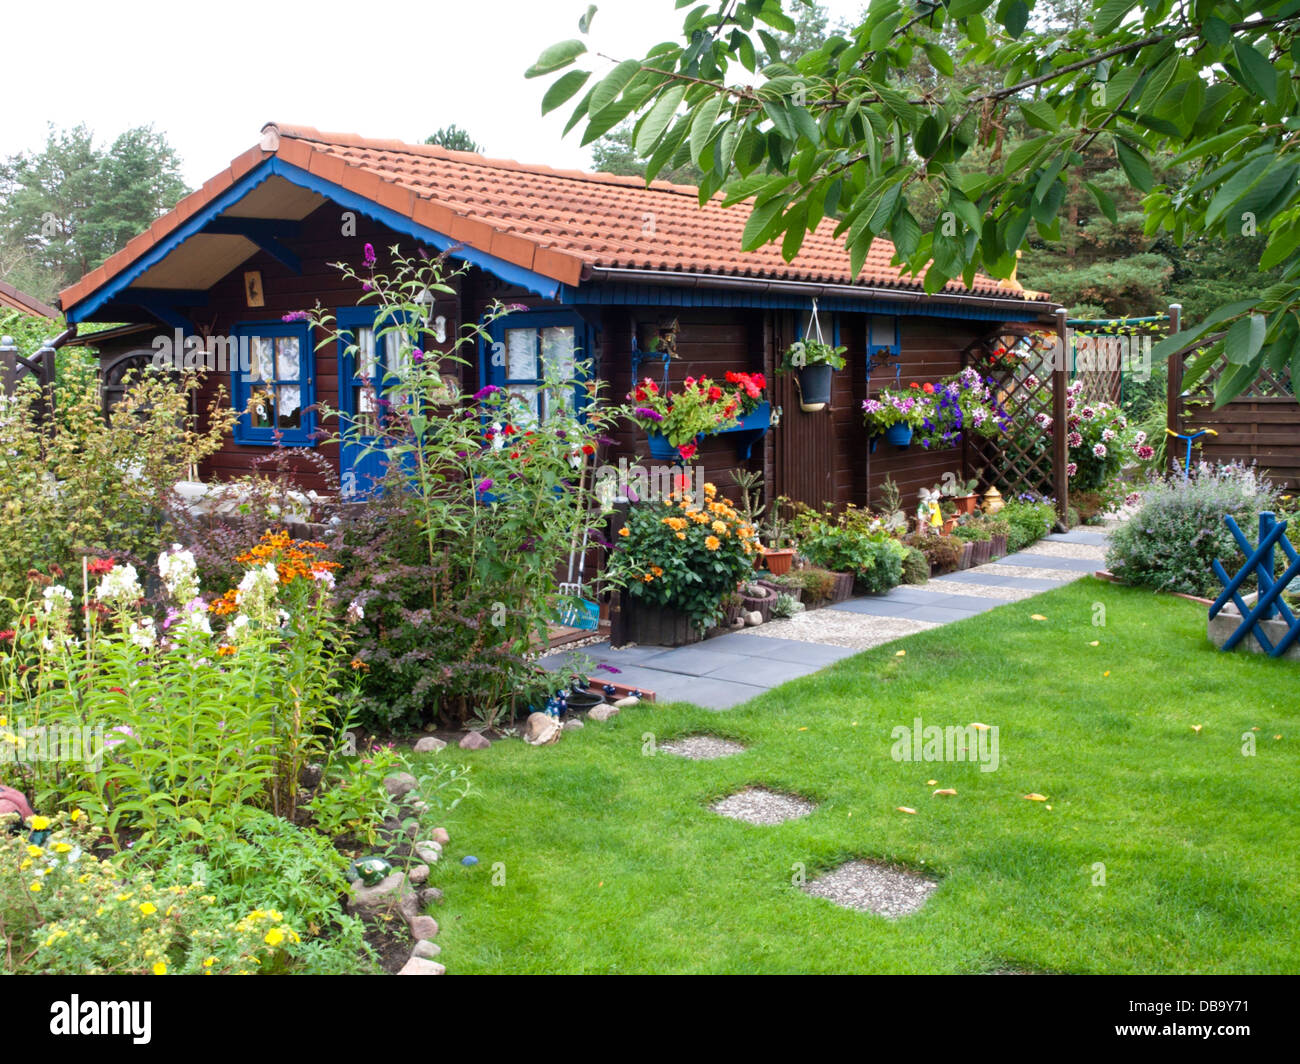 holz garten haus in einem schrebergarten stockfoto bild 58611253 alamy. Black Bedroom Furniture Sets. Home Design Ideas